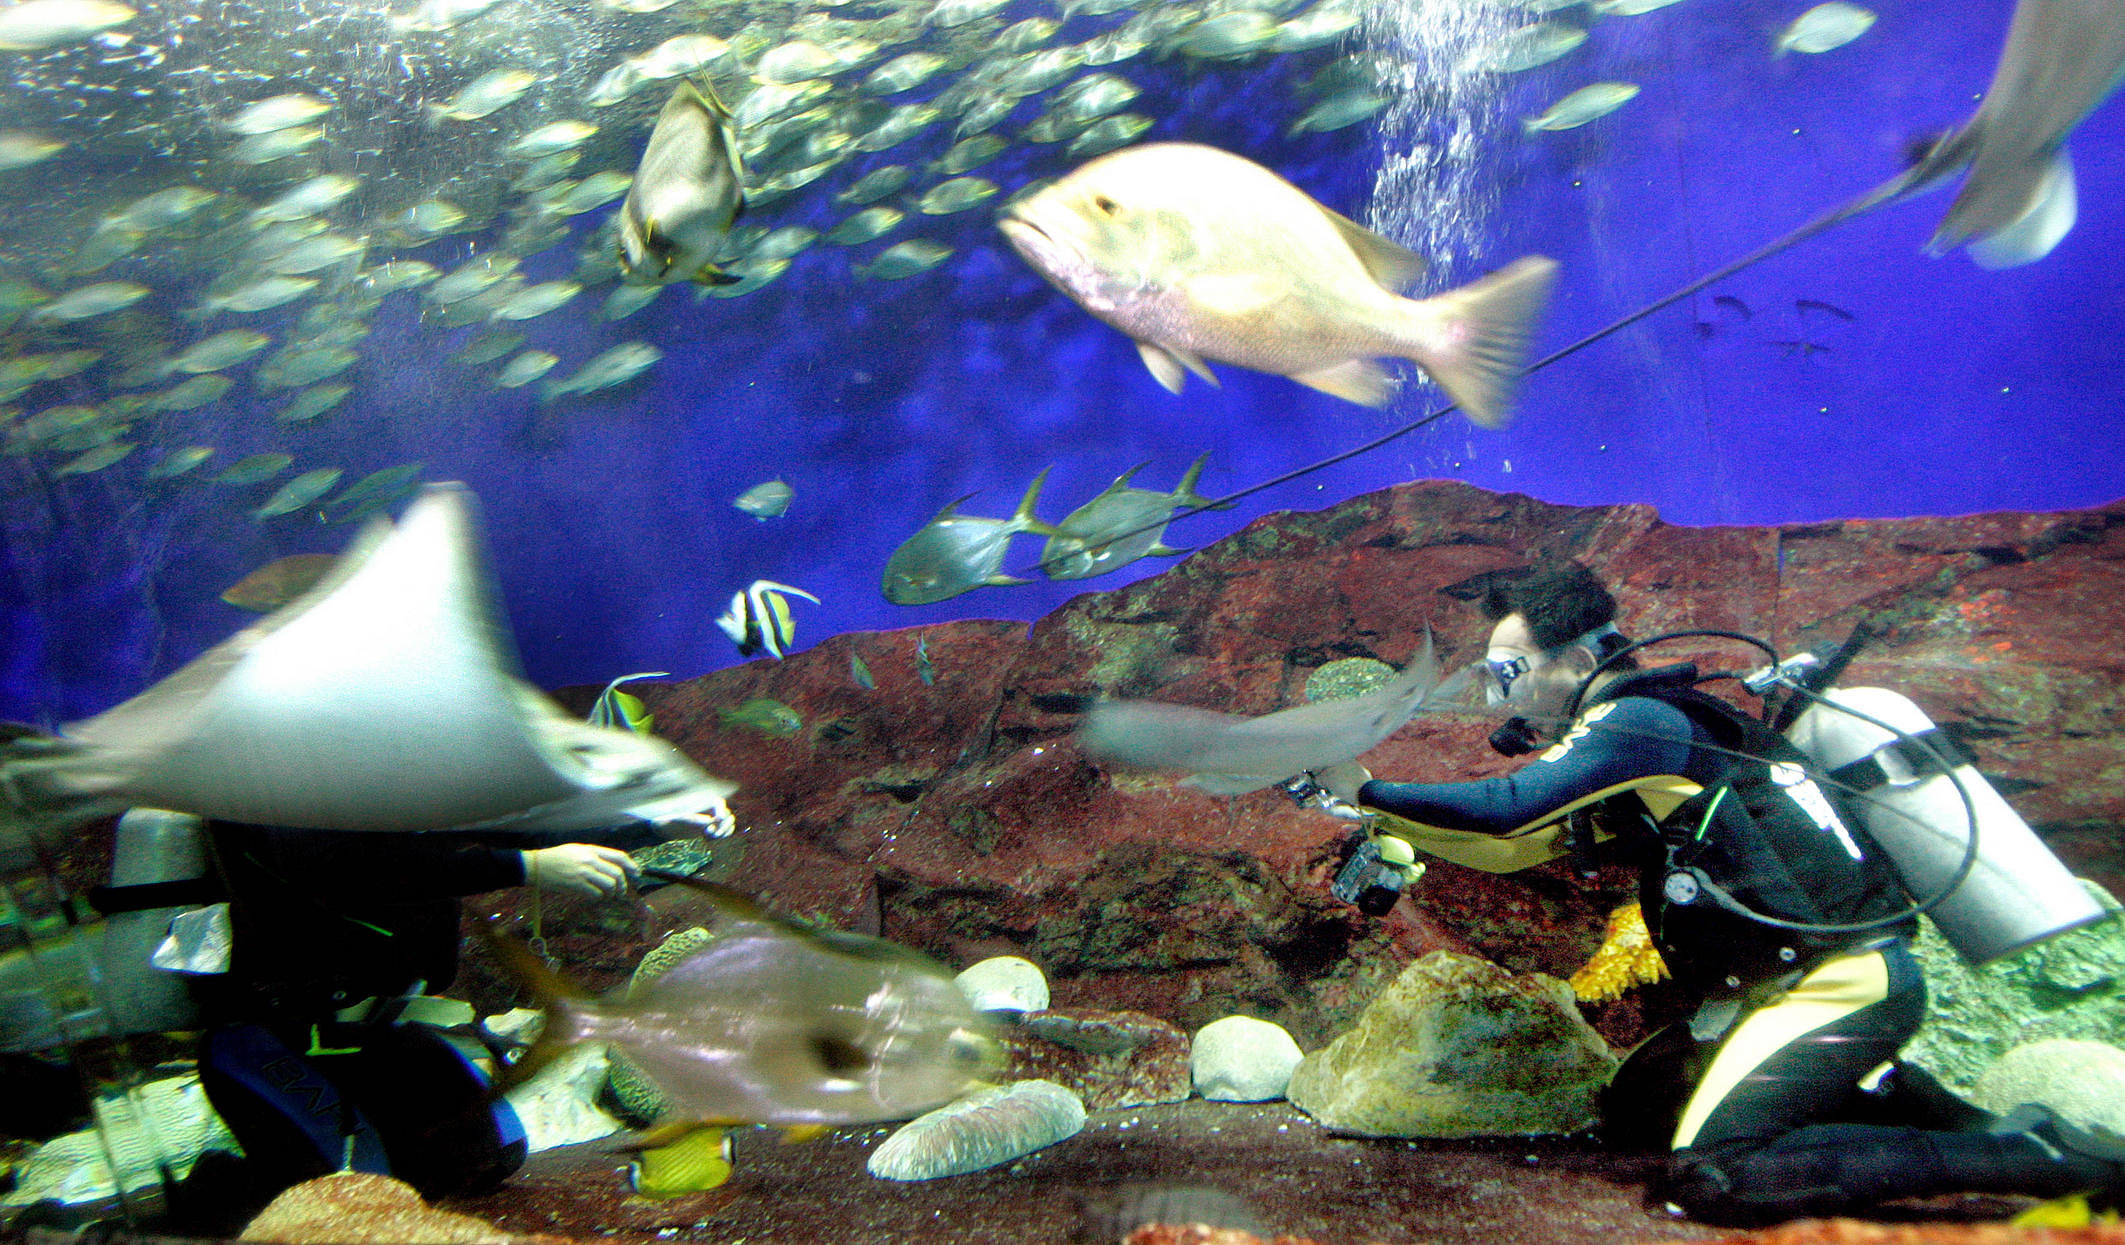 Underwater World Singapore to close on June 26 with lease ending